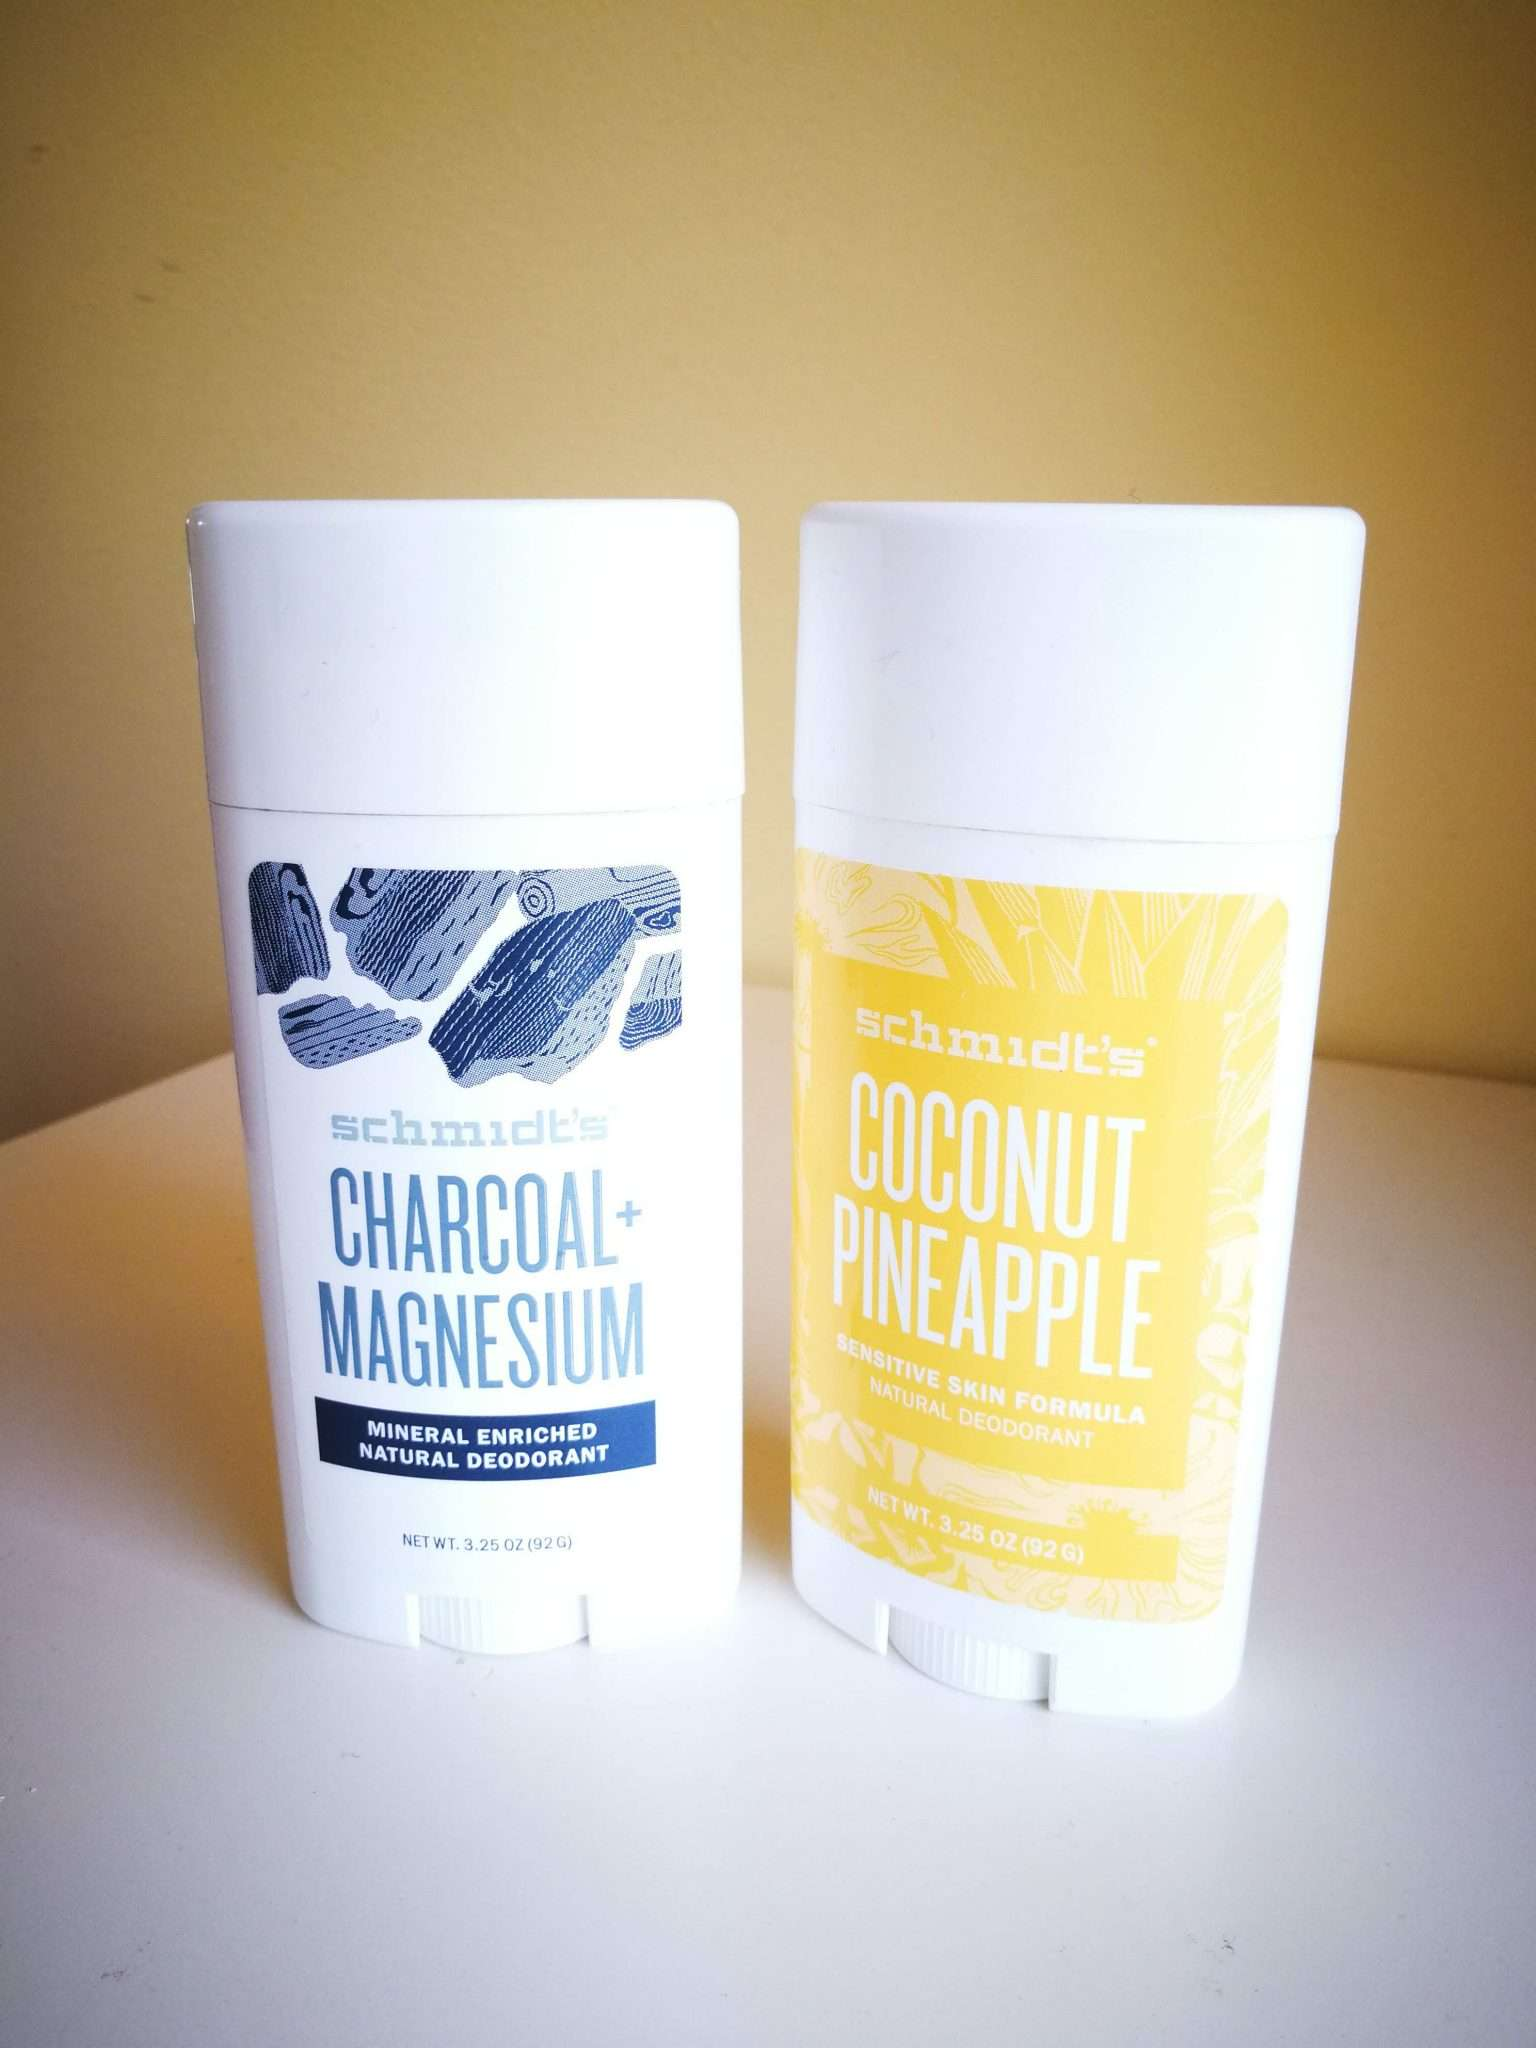 Schmidt's is the Best Natural Deodorant - Actually works to kill body odor